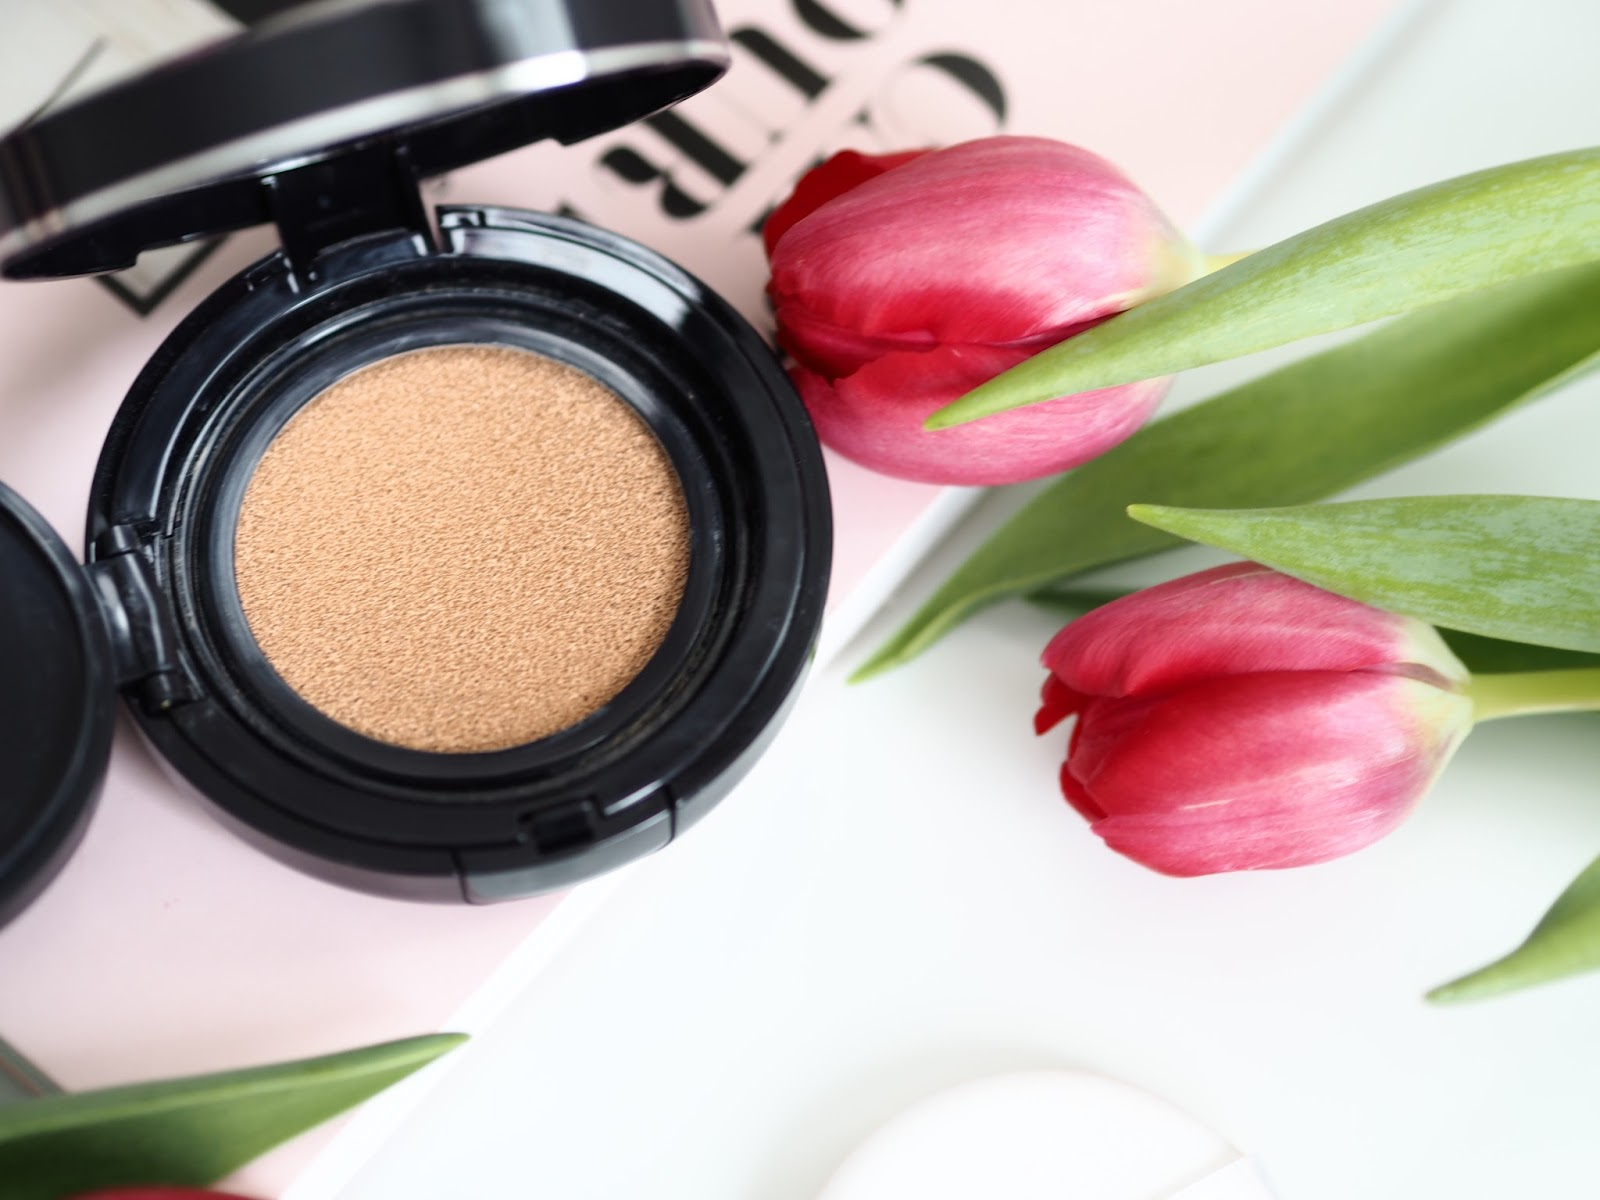 Dior Diorskin Forever Cushion Foundation